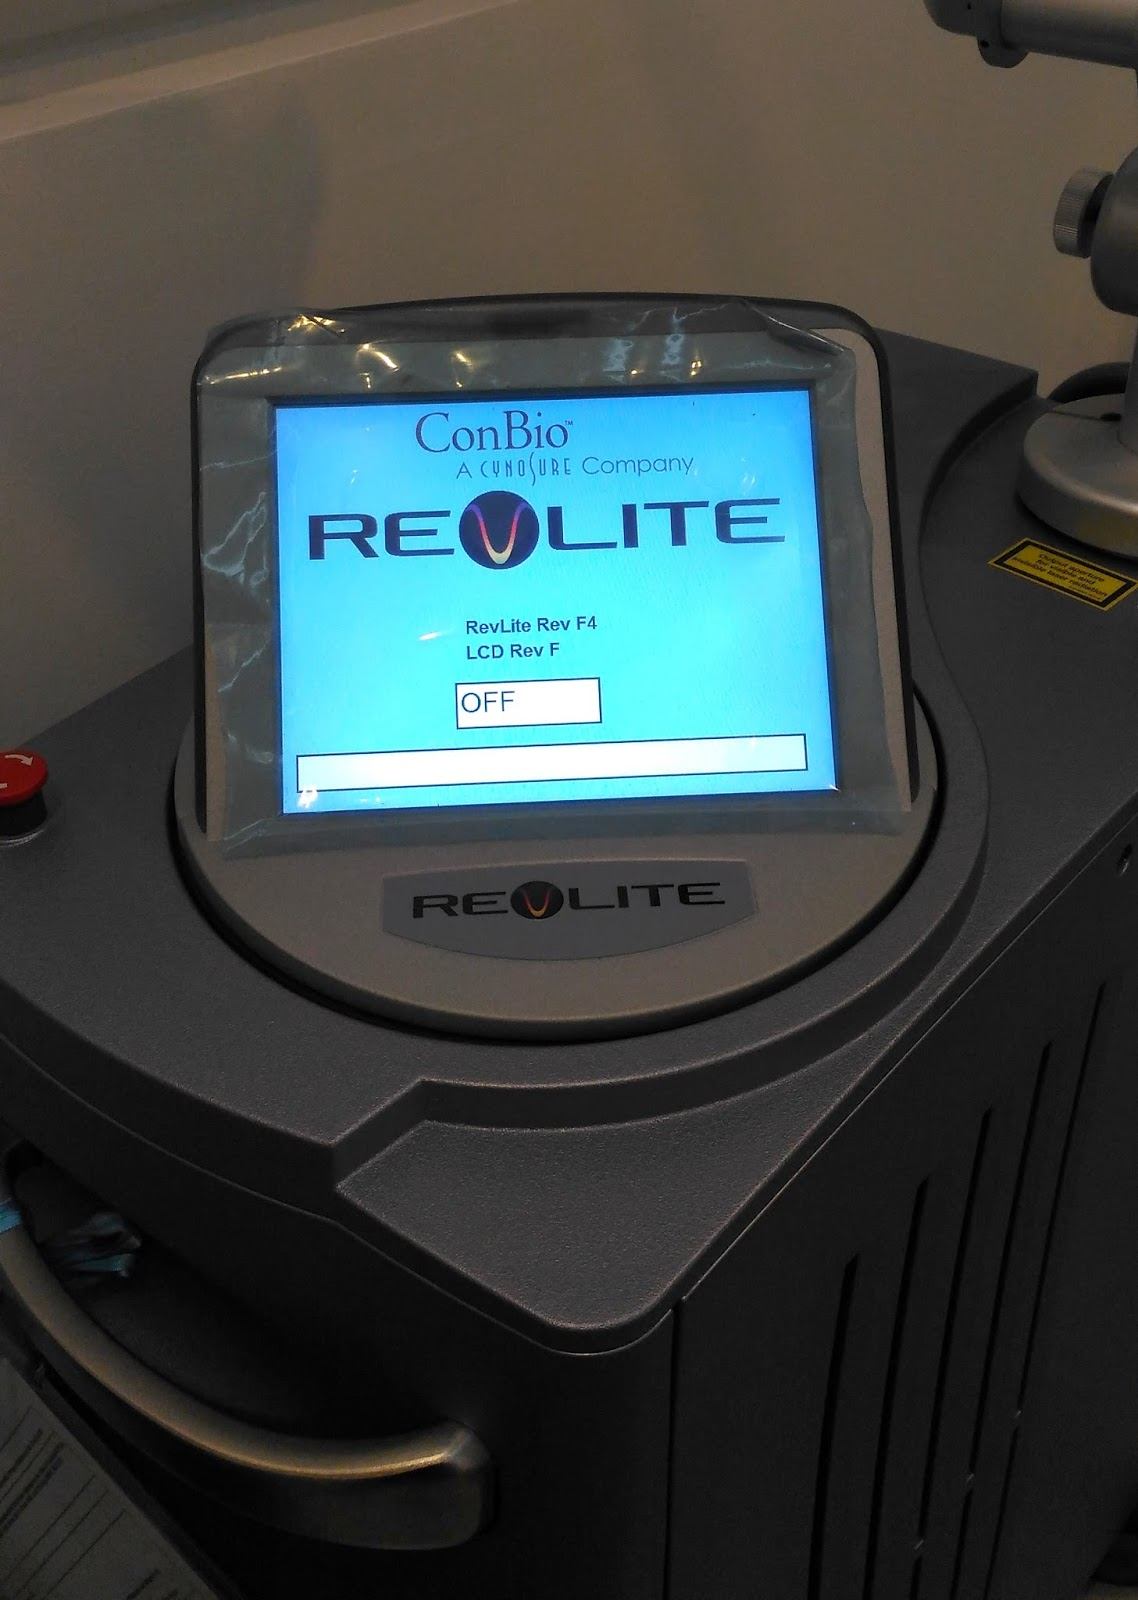 revlite machine